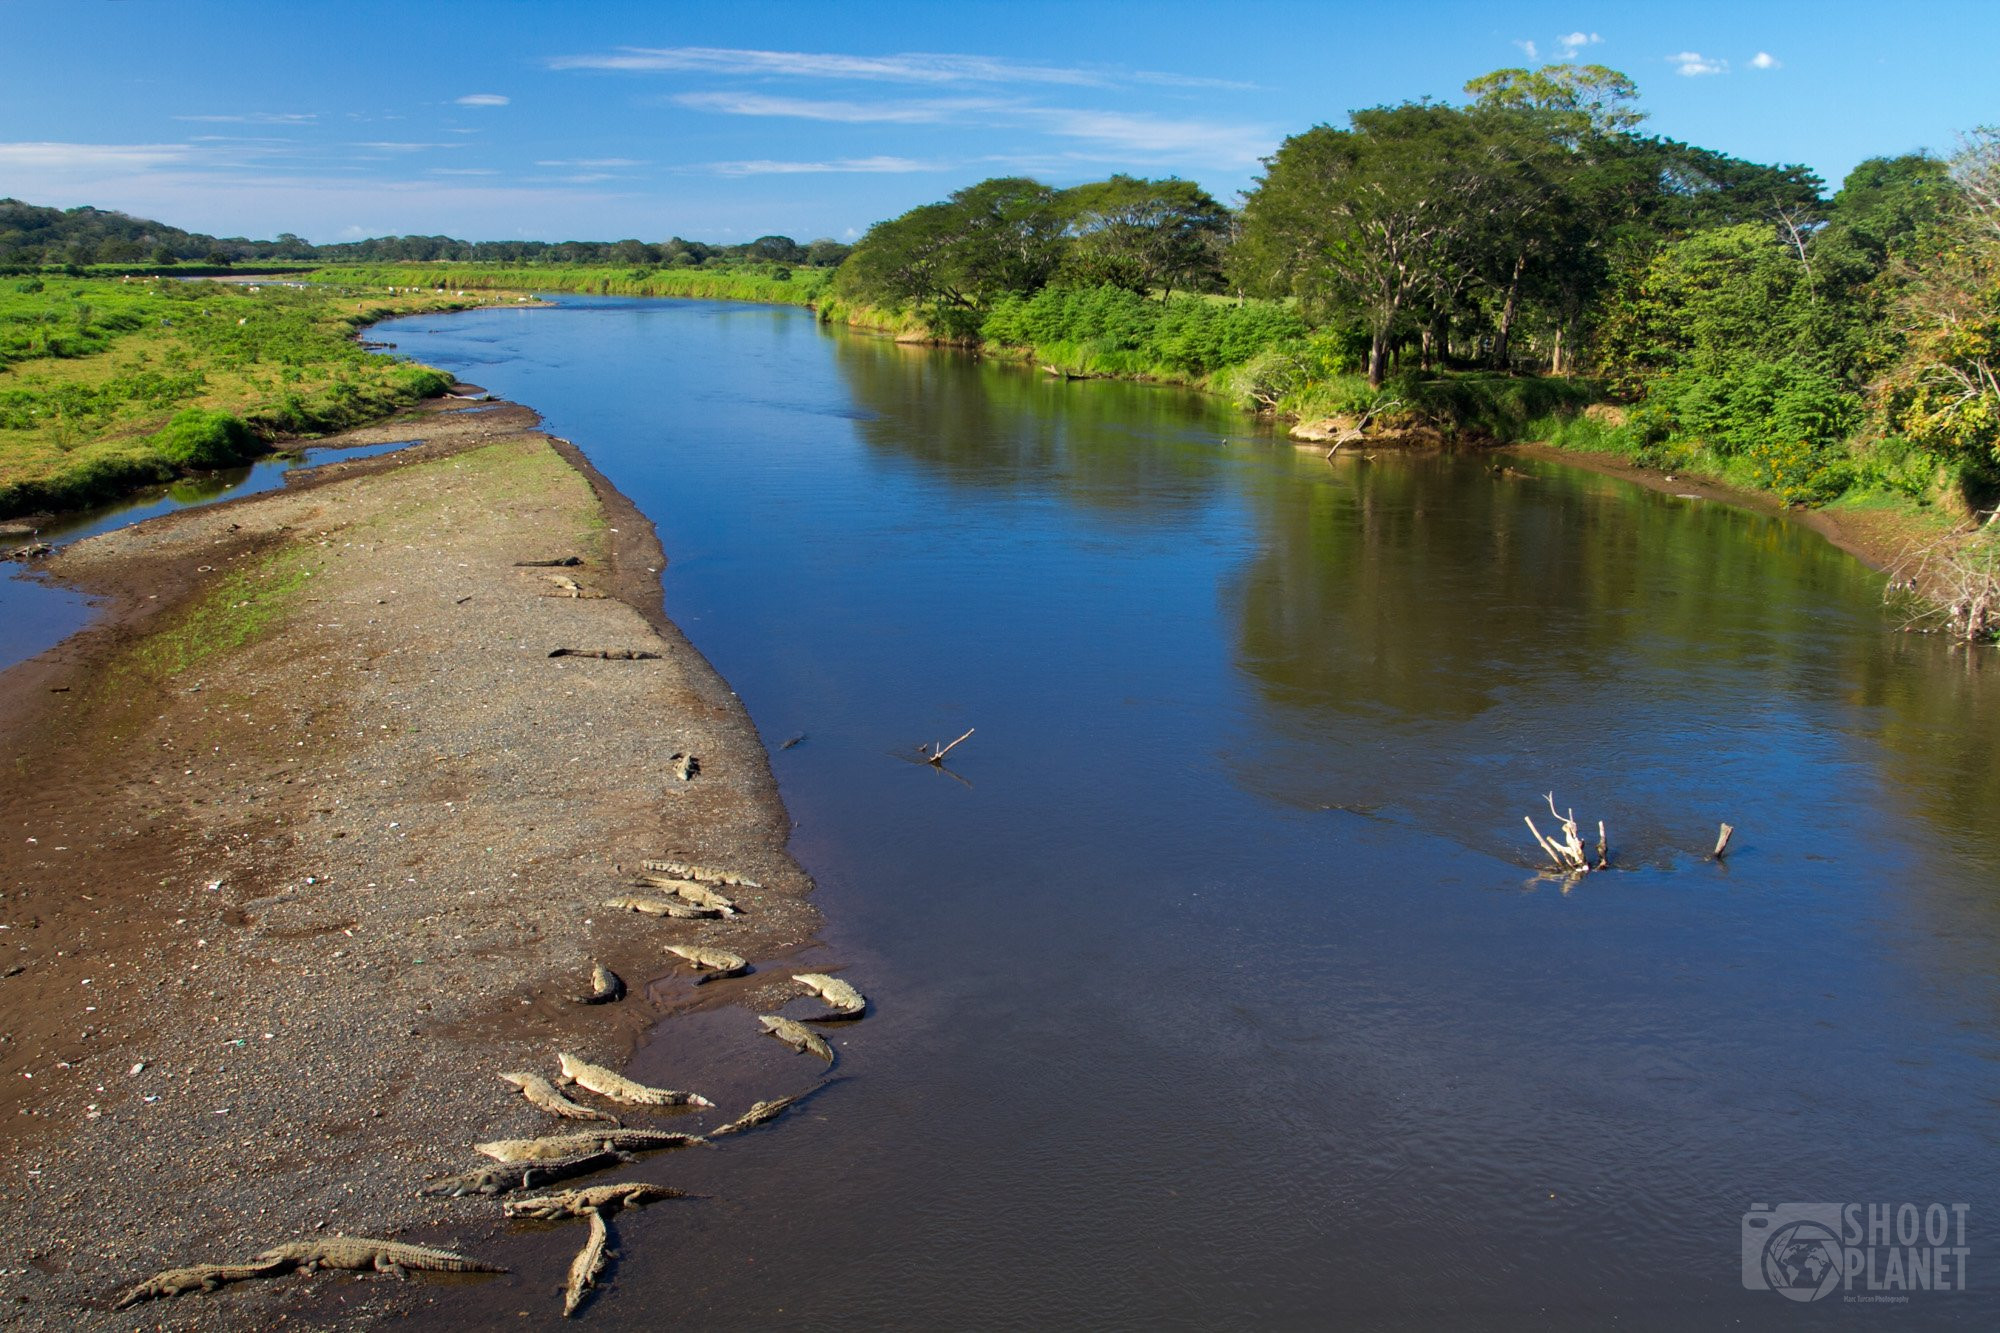 Caimans in the Tarcoles River, Costa Rica